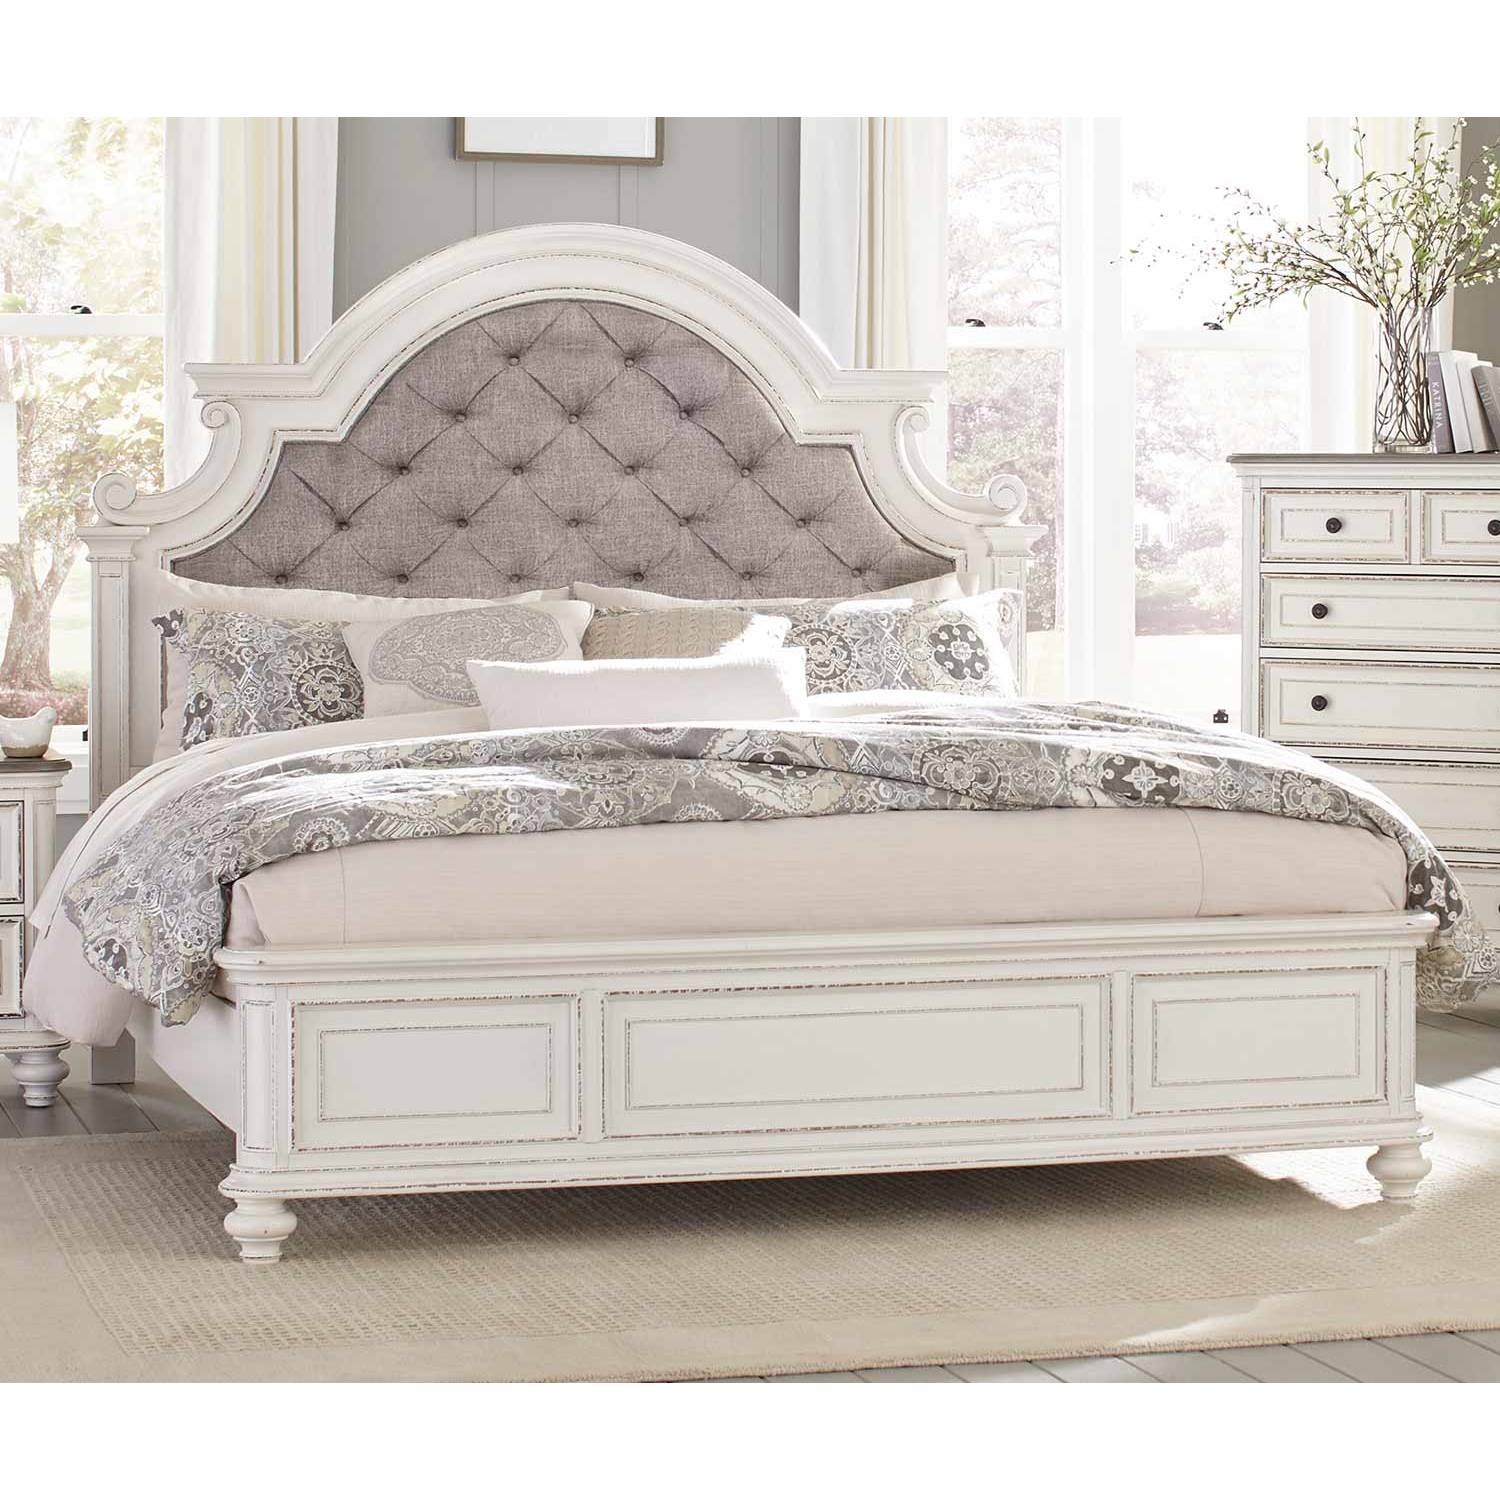 1624KW 1CK Baylesford California King Bed Antique White Rub Through Finish